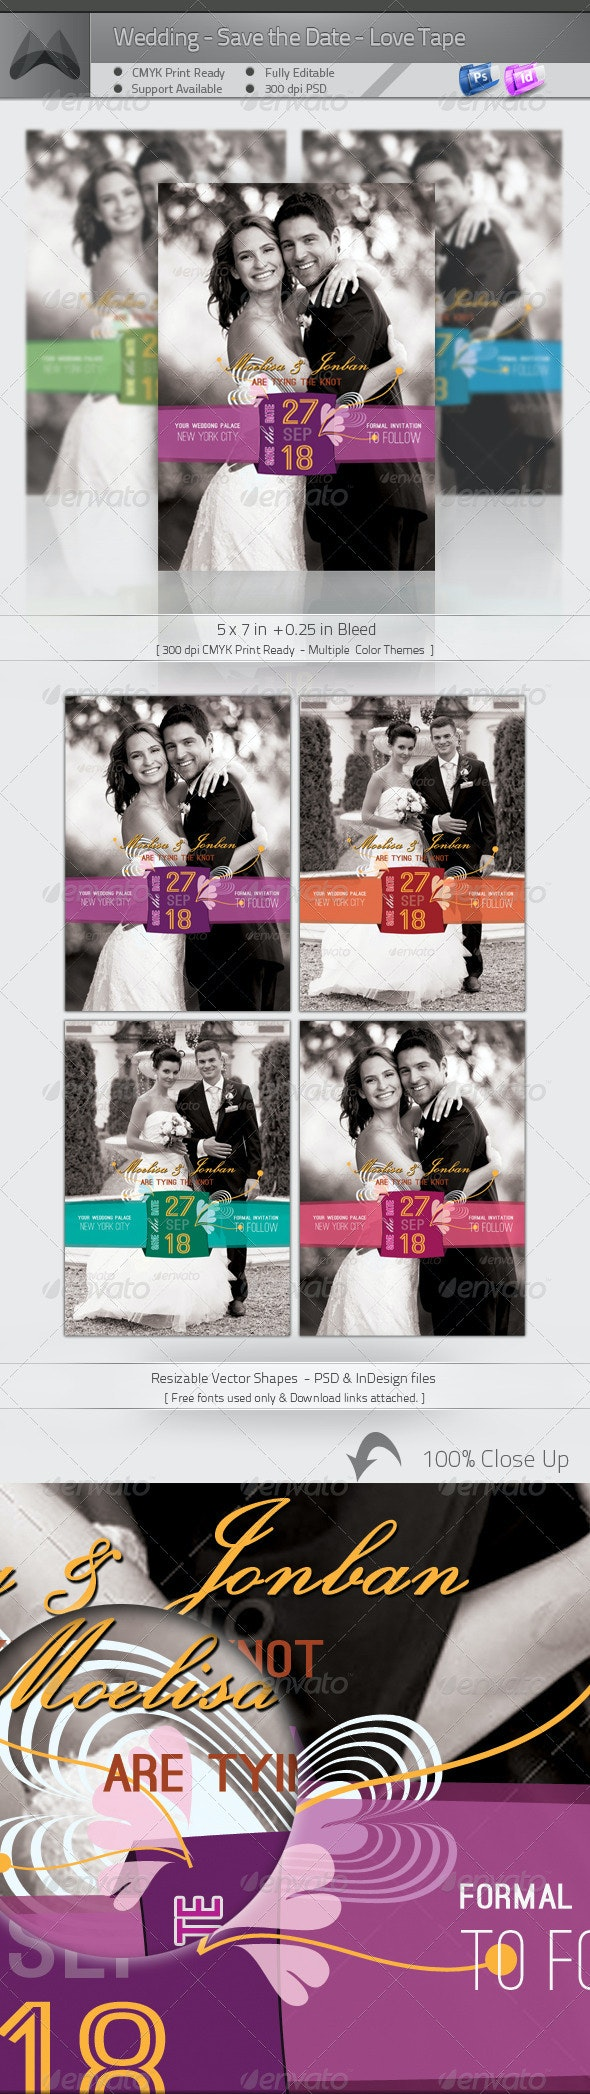 Wedding - Save the Date - Love Tape - Weddings Cards & Invites